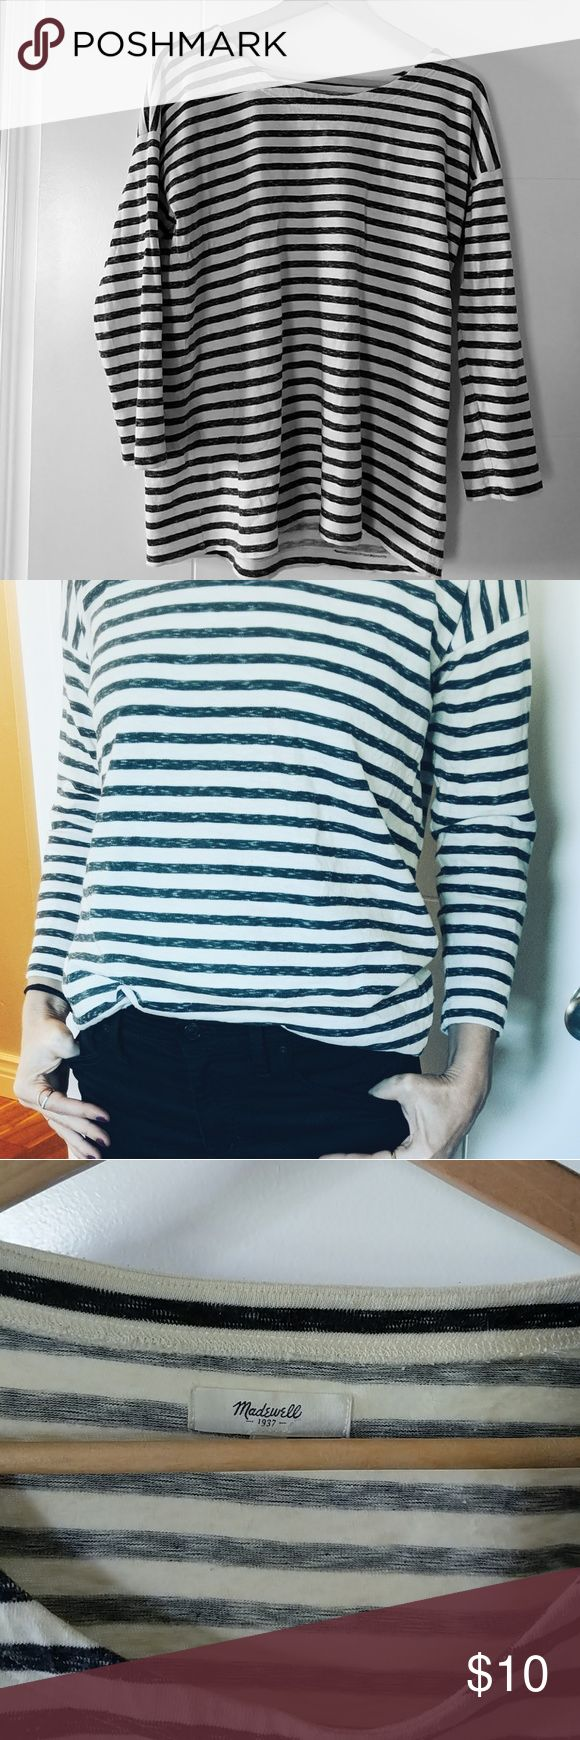 Madewell striped tee 3/4 sleeved slouchy black and white striped tee. 100% cotton. Madewell Tops Tees - Long Sleeve